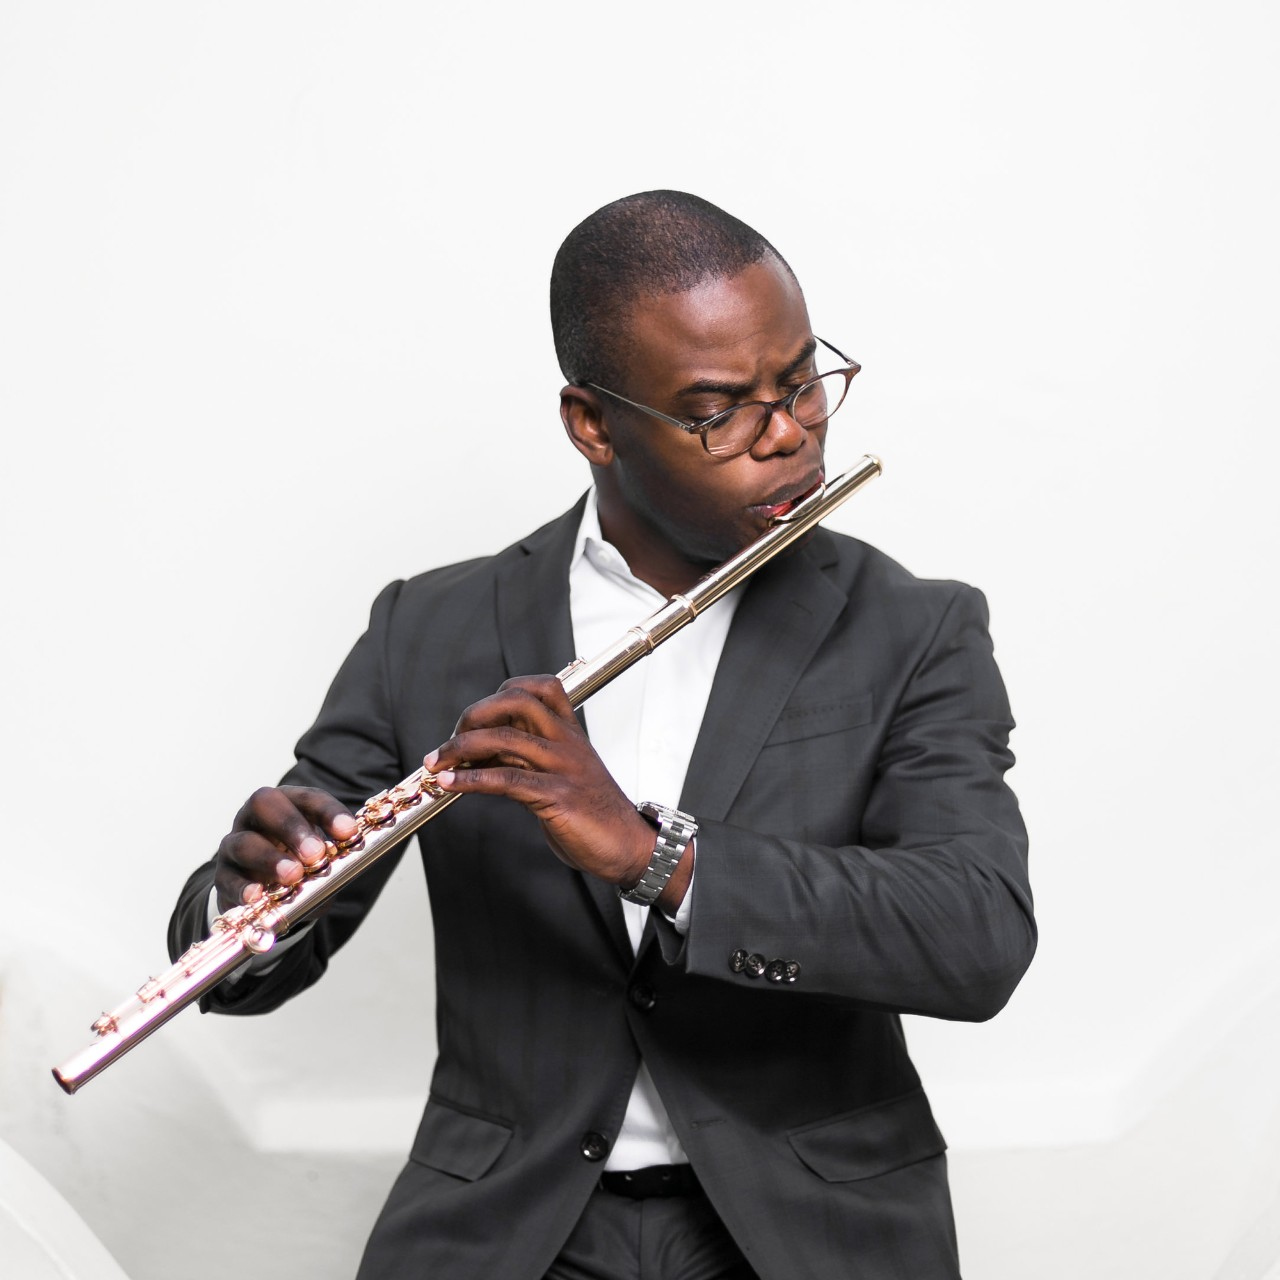 Demarre McGill performing with his flute.